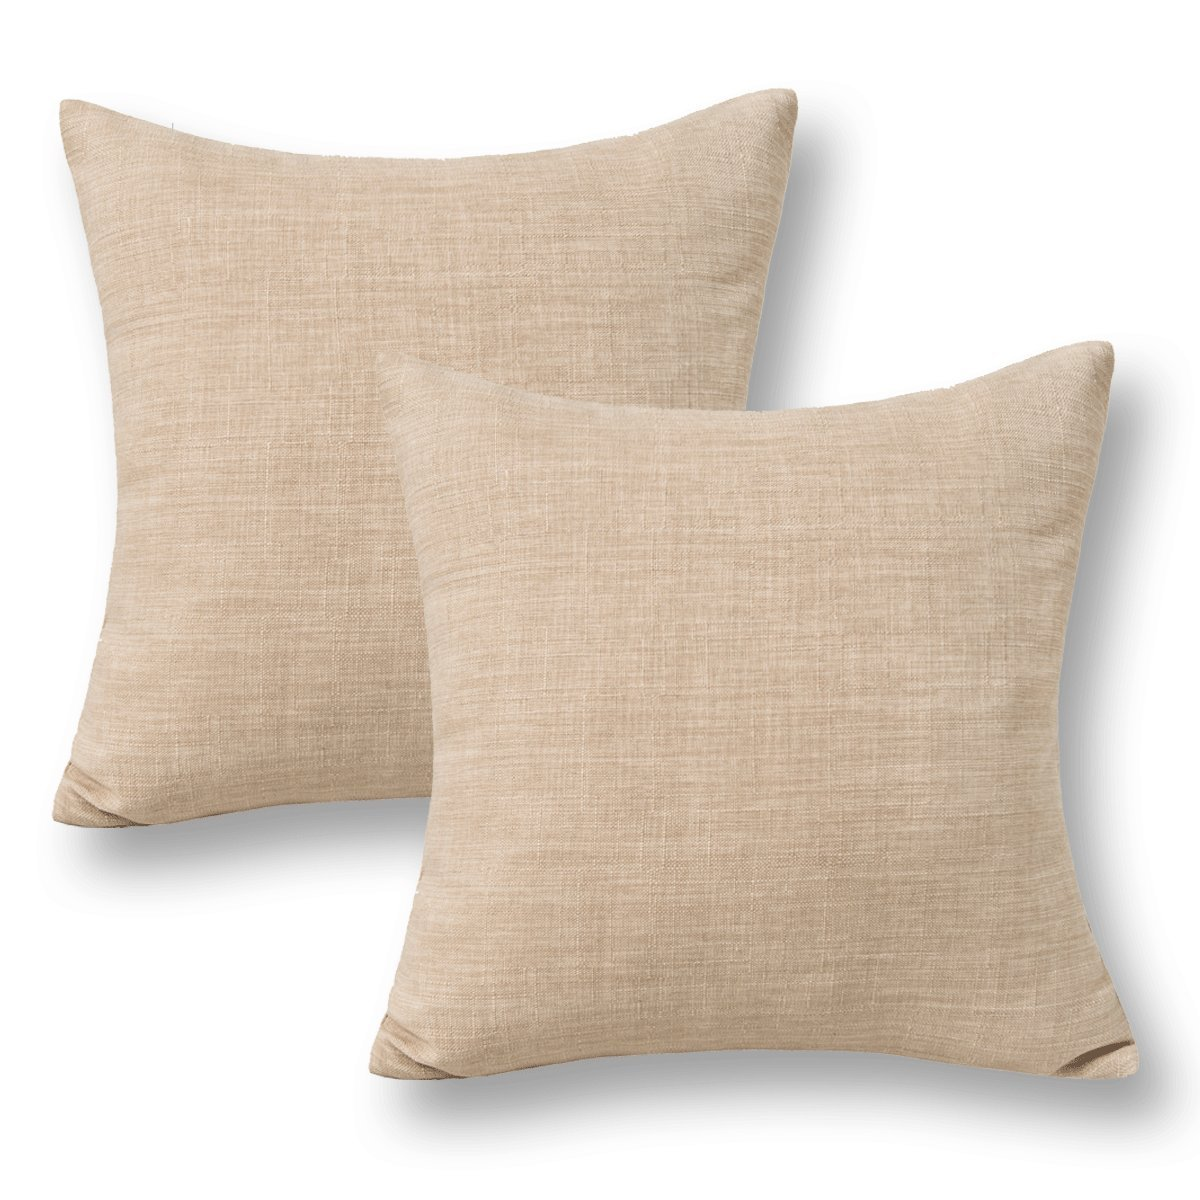 Jeanerlor Pack of 2 Decor Burlap Natural Style Lined Linen Throw Pillow Cases Cushion Cover Car, 18x18 inch(Natural Linen) by Jeanerlor